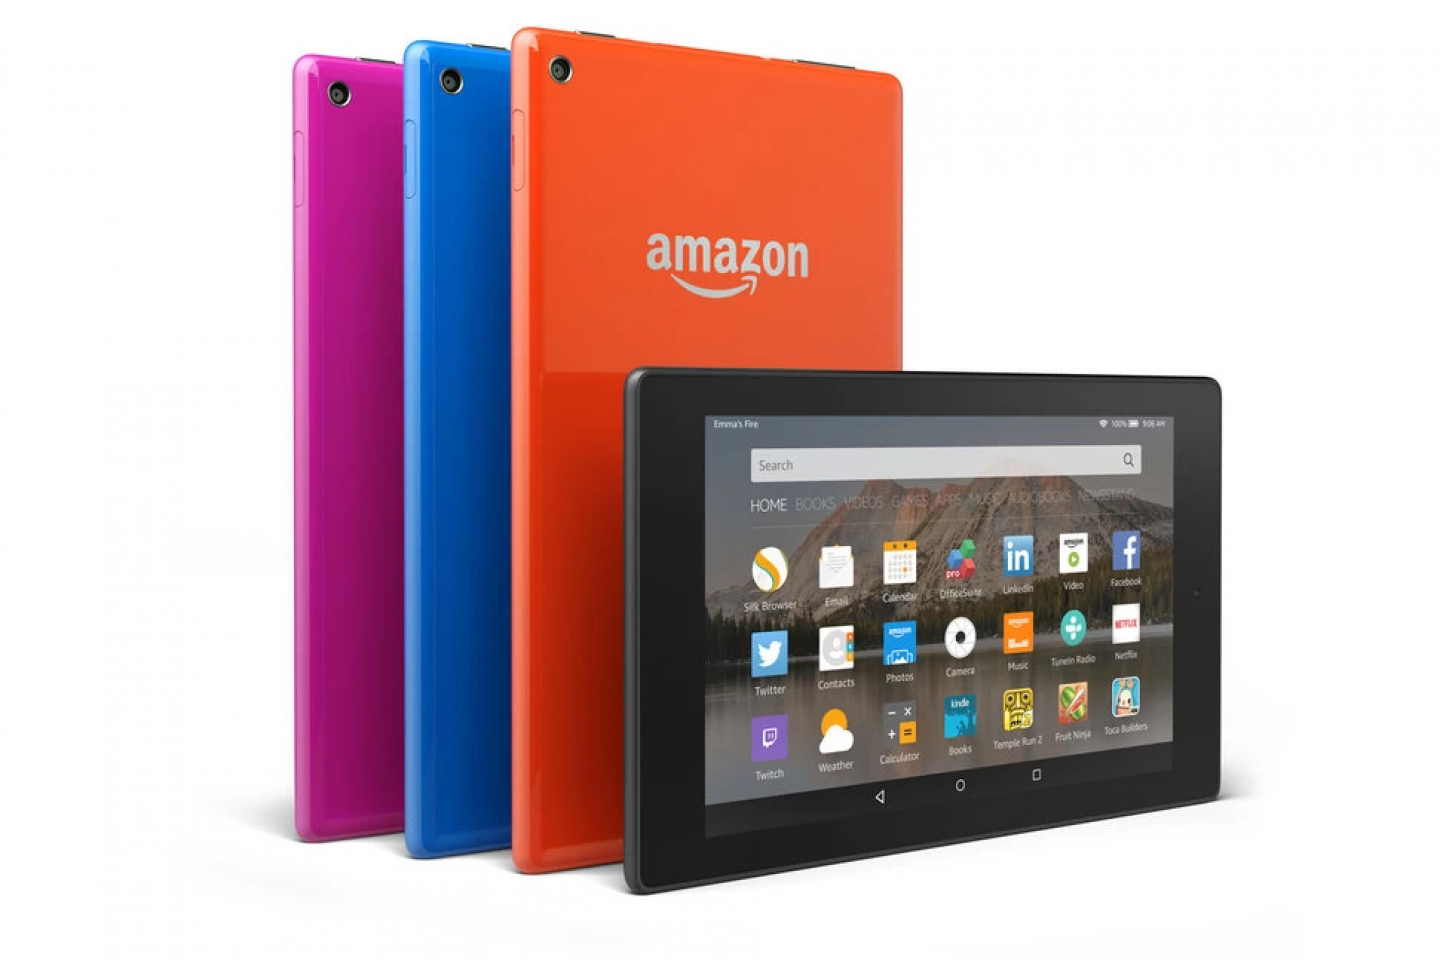 135332-tablets-news-amazon-updates-tablet-family-with-fire-hd-8-and-hd-10-new-50-7-inch-fire-tablet-and-refreshed-kids-edition-image1-SafVhLXm4g-jpg